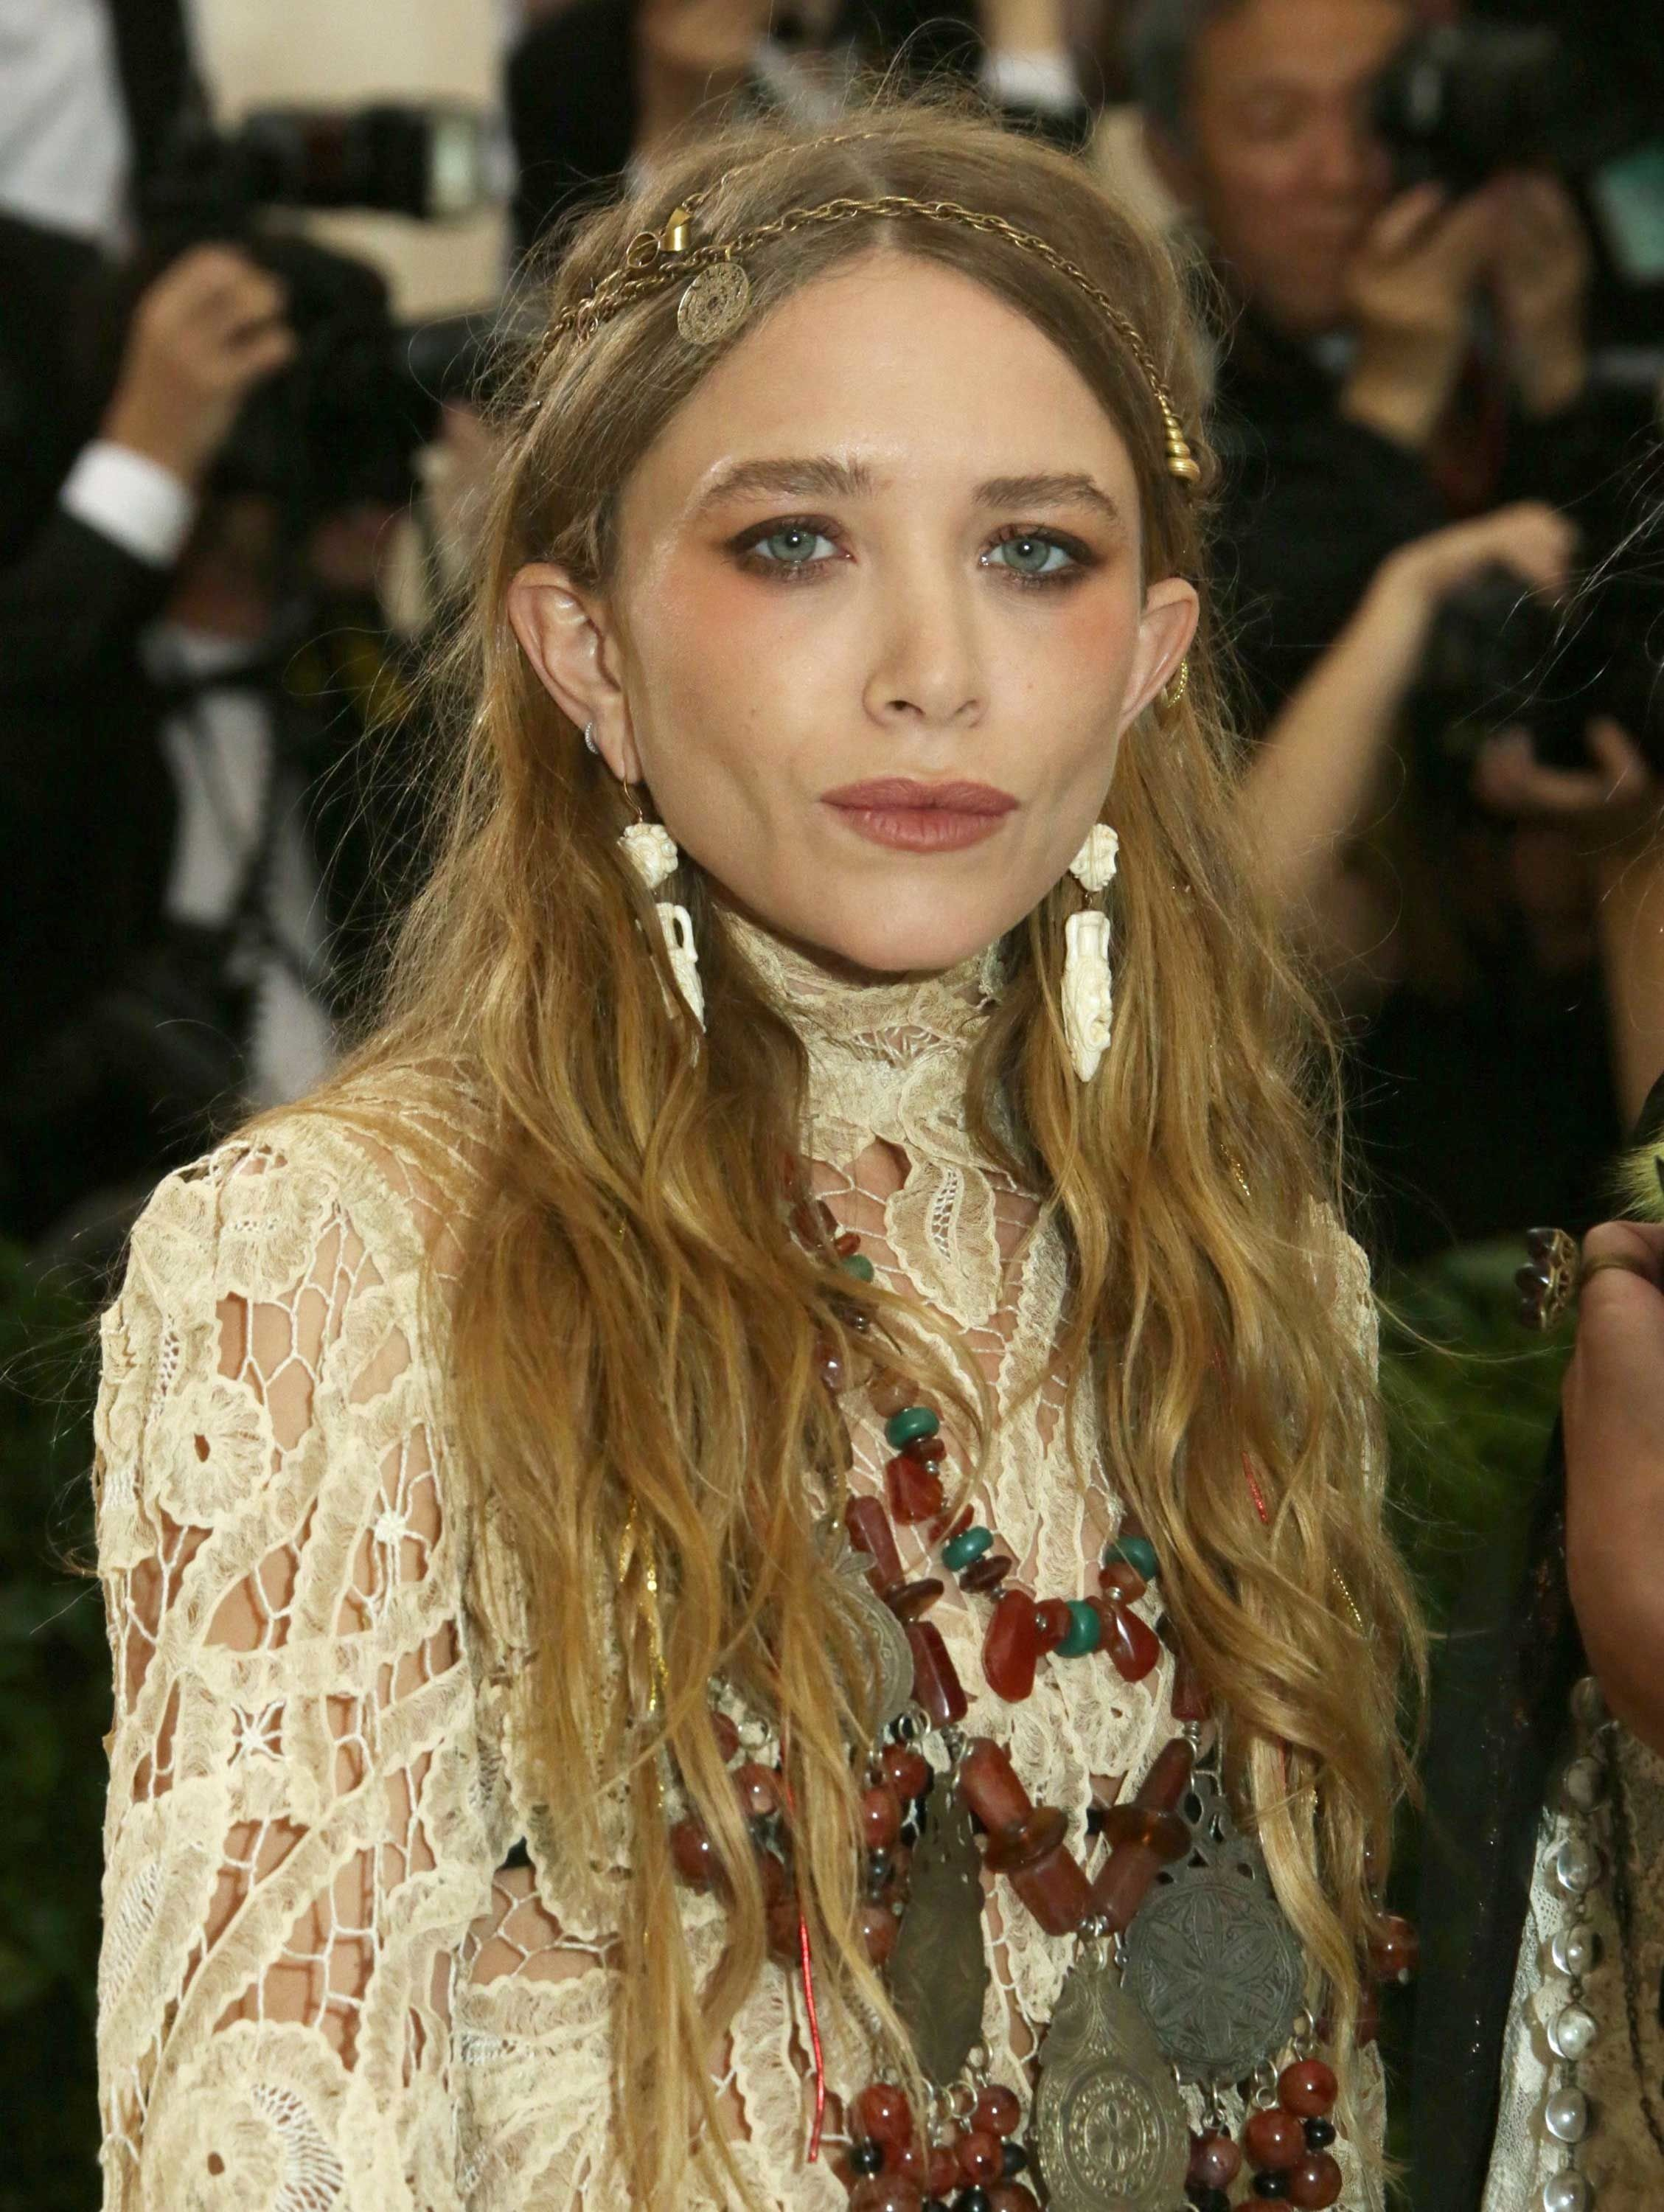 709f0a66c89 Mary-Kate Olsen went the boho route in a (presumably vintage) chain  headpiece and layers of beaded necklaces.